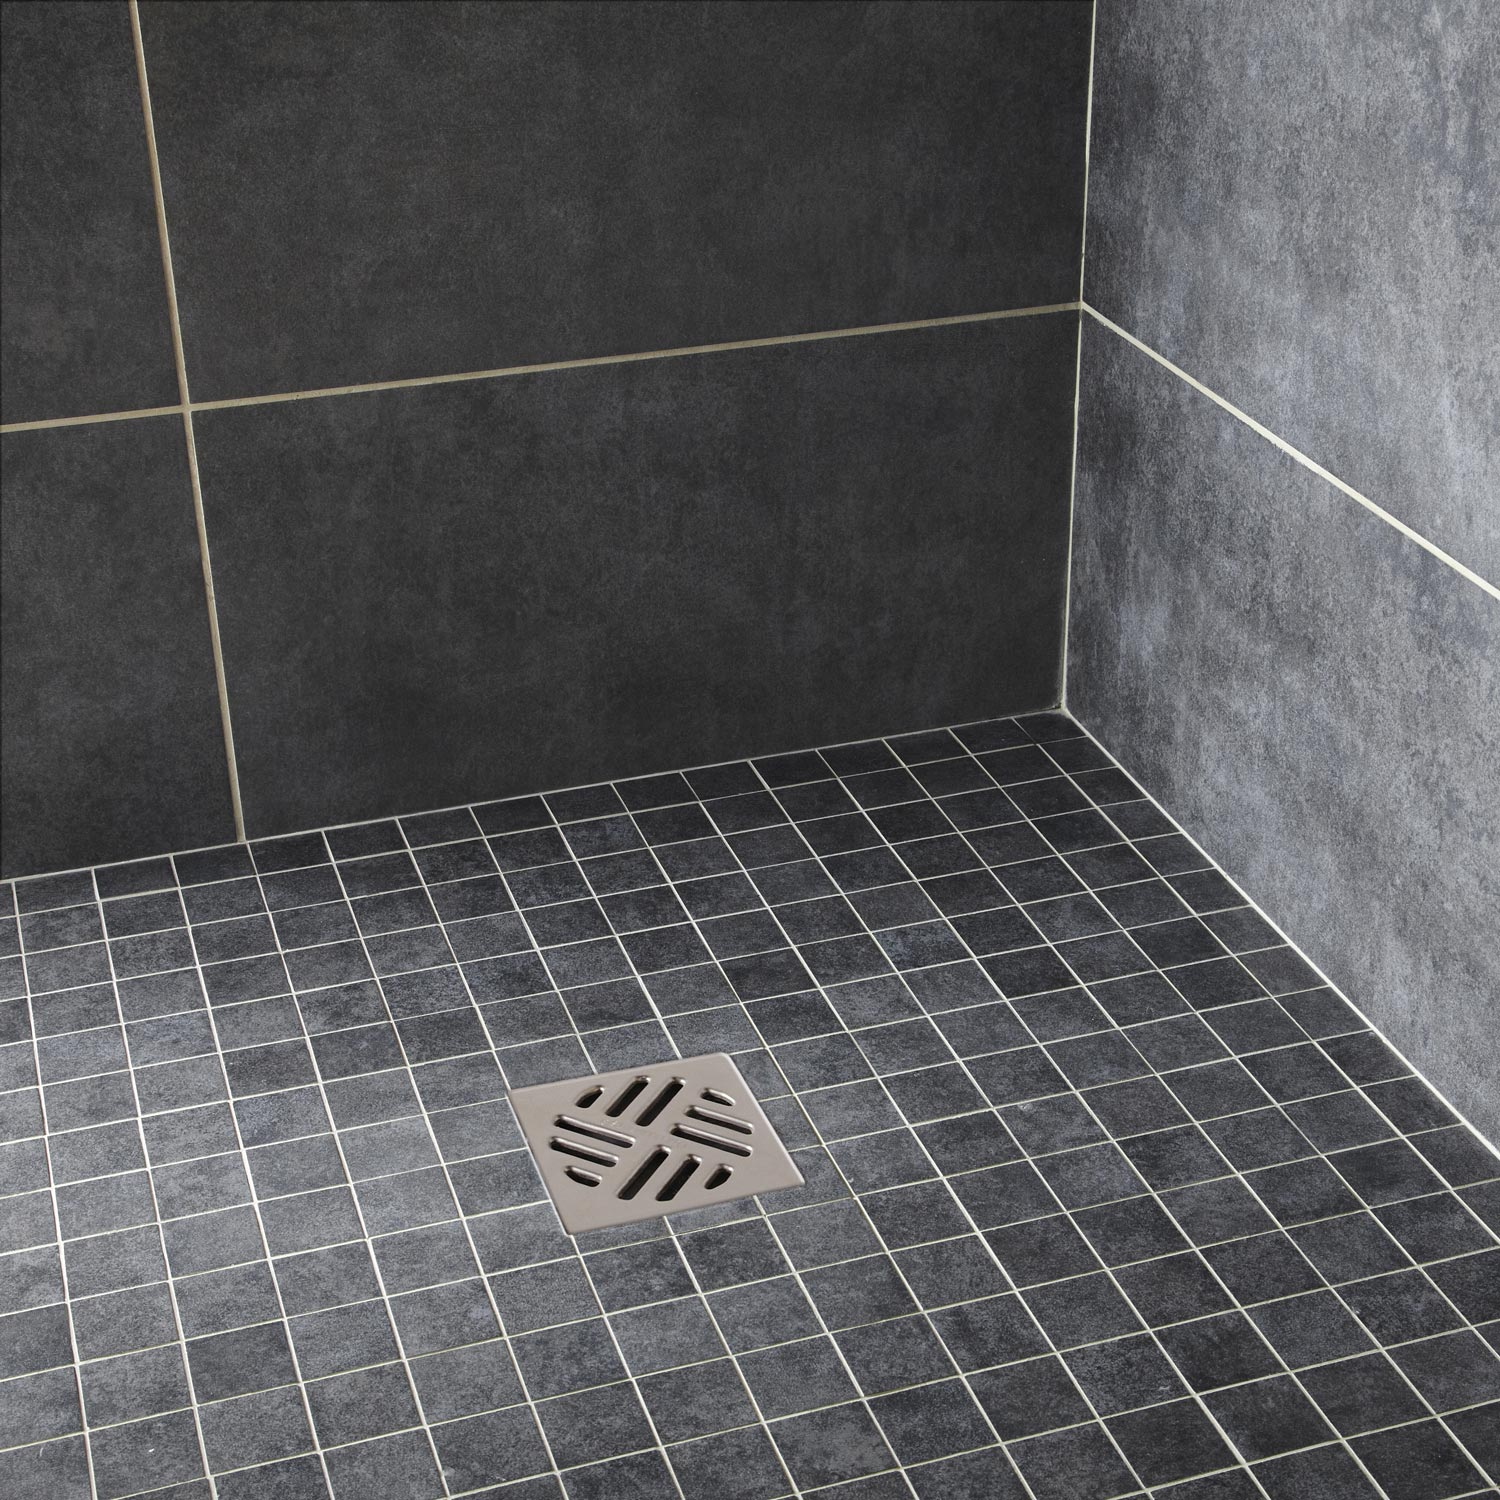 Lino salle de bain brico depot for Carrelage le roy merlin